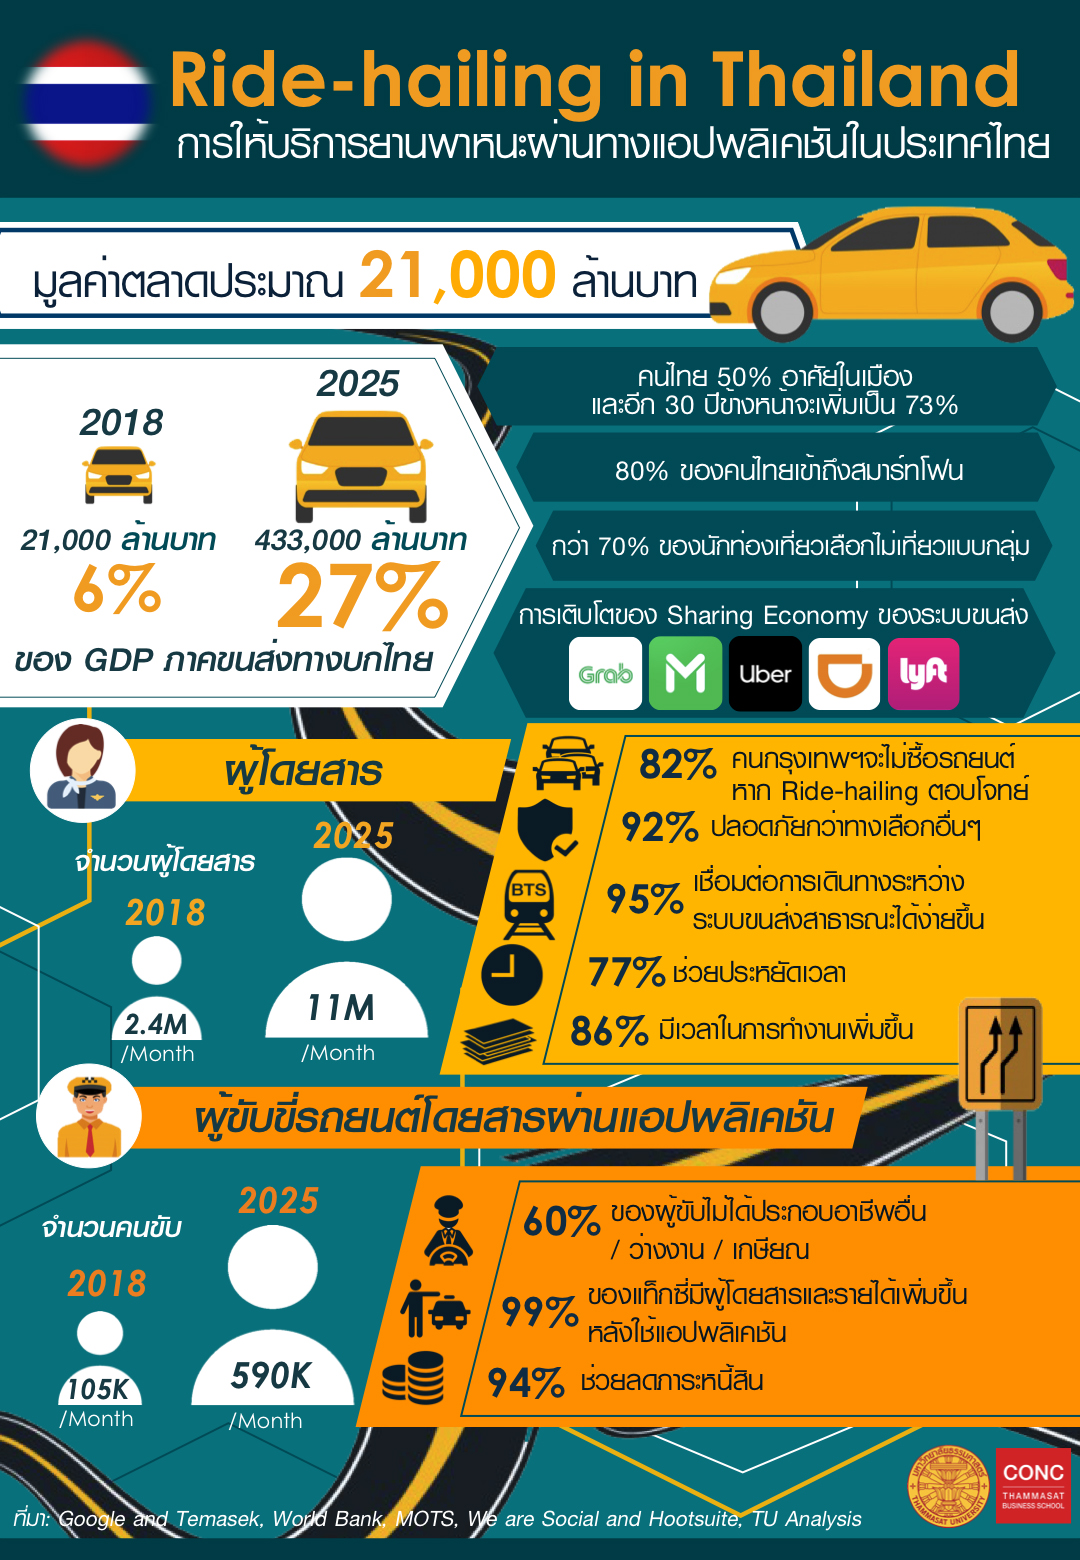 Ride-hailing Infographic by TU CONC